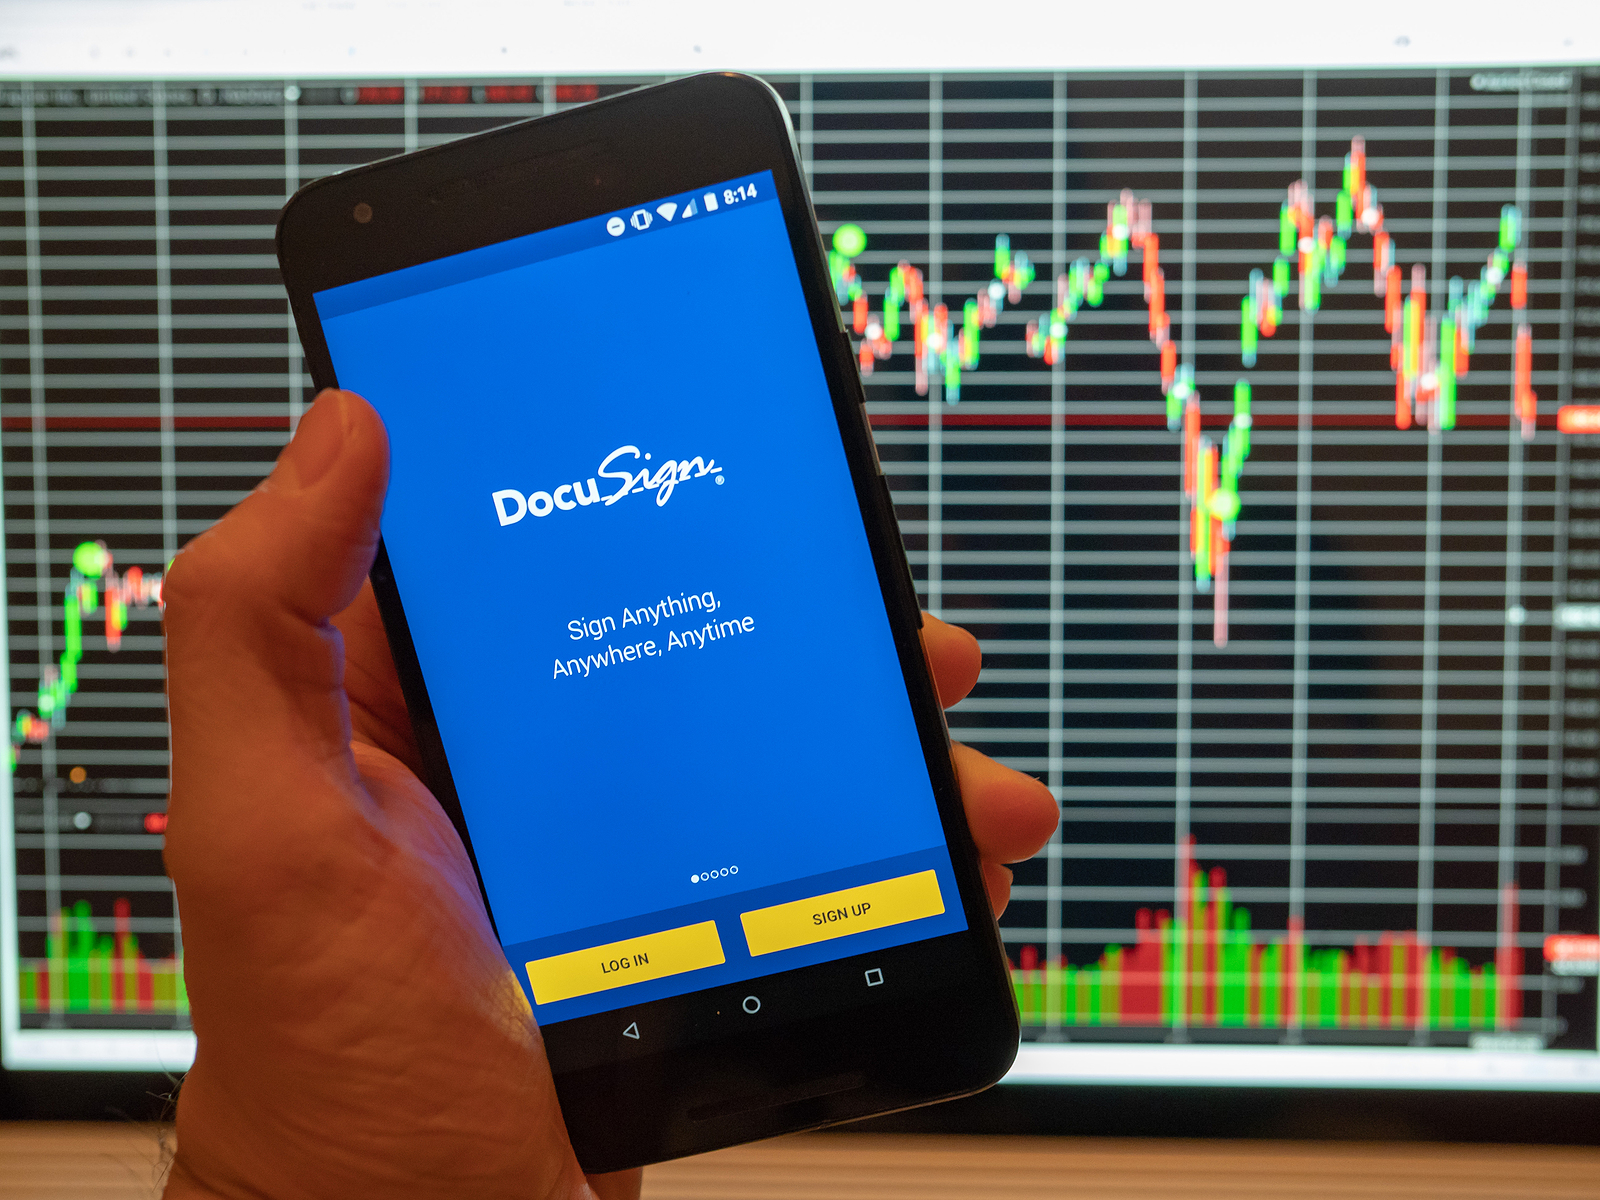 DocuSign DOCU stock